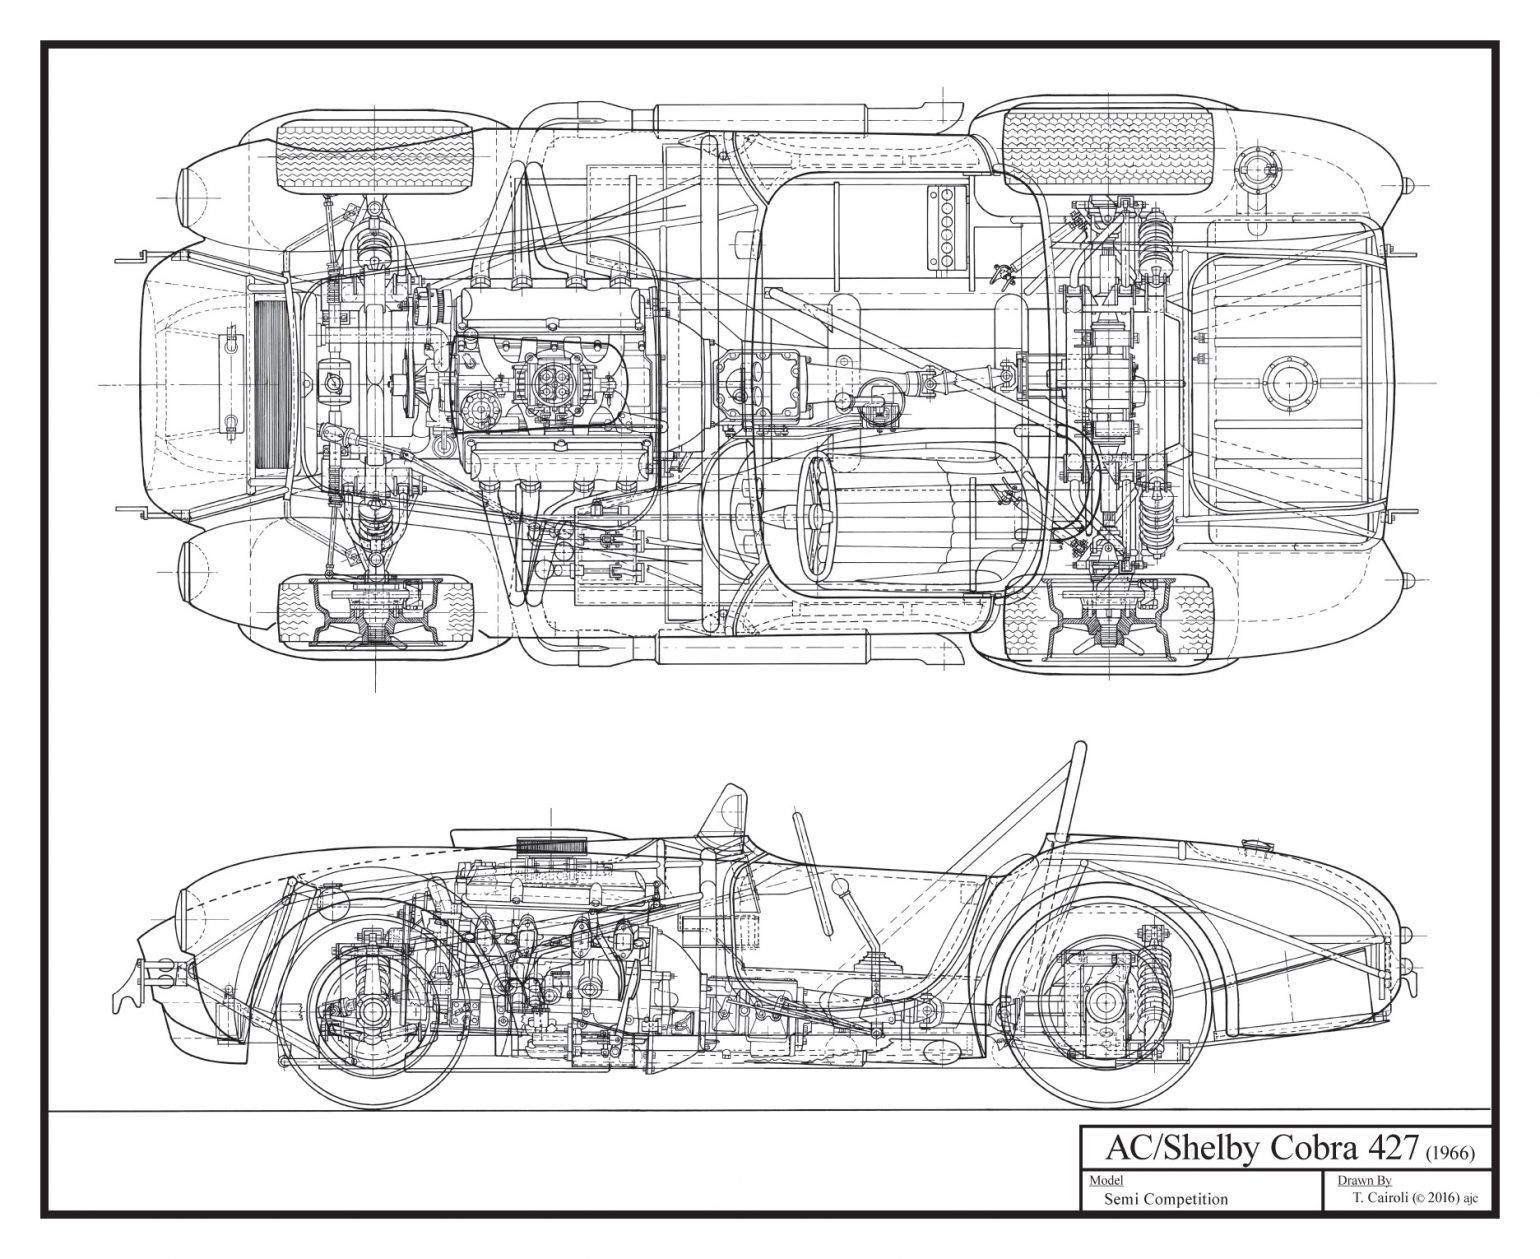 tony cairoli has completed his 1966 shelby cobra 427 schematic all hand  [ 1540 x 1259 Pixel ]